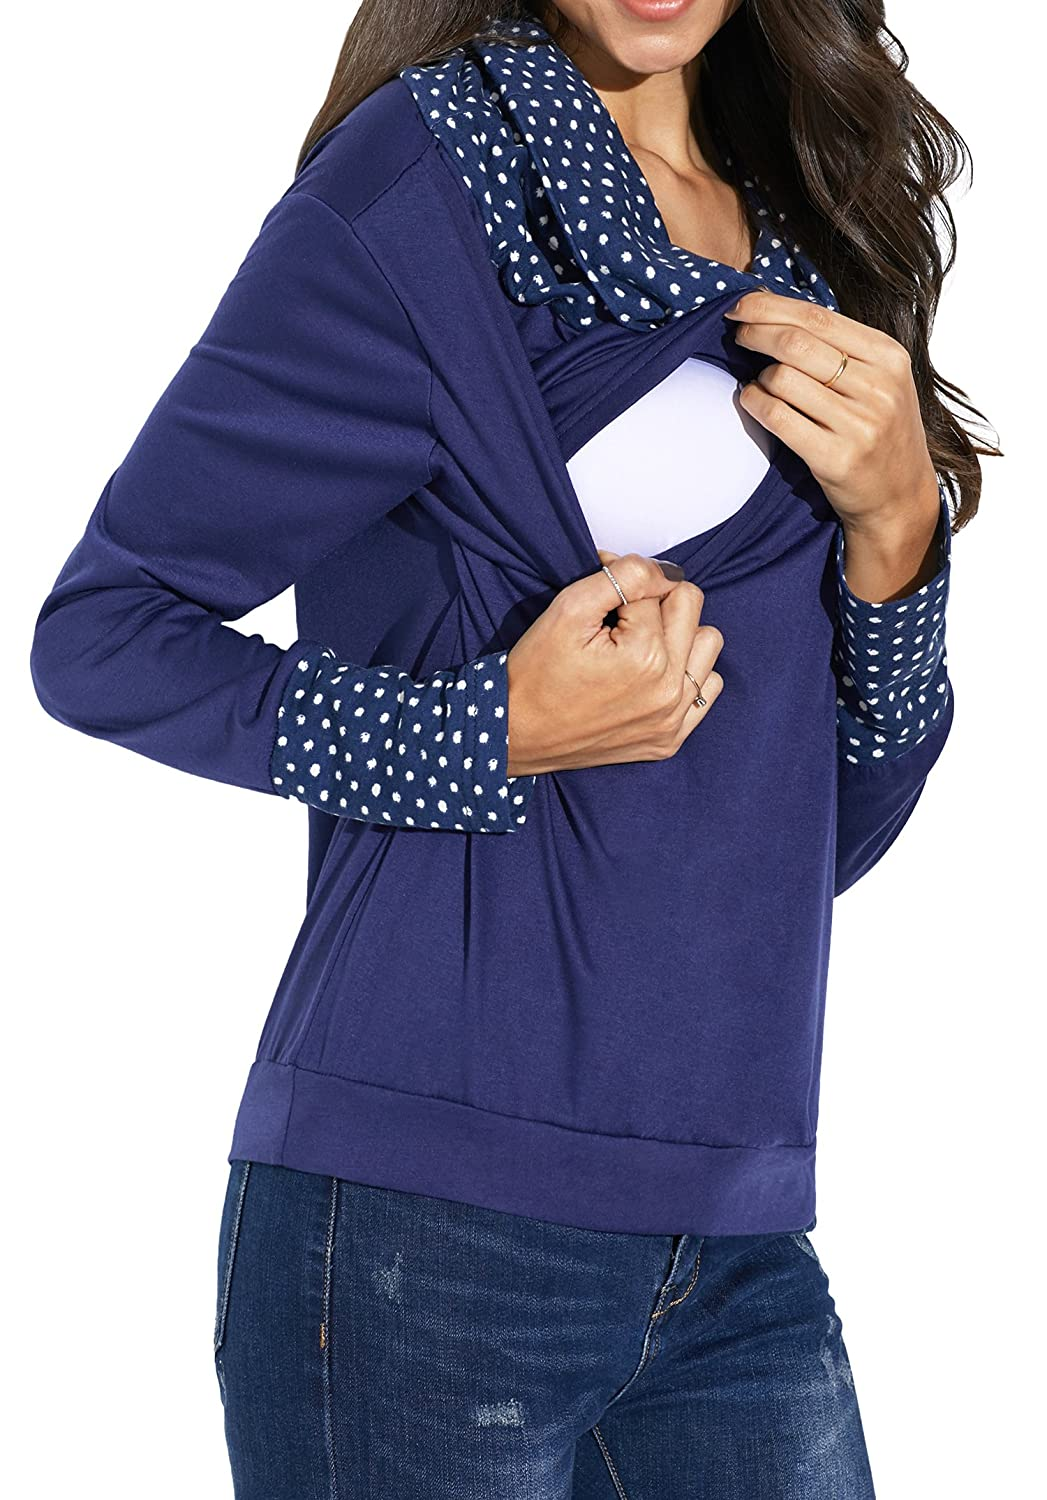 3599b77de77 Design  Double layers with stretchy for nursing and convenient breastfeeding   Just pull the outer ...